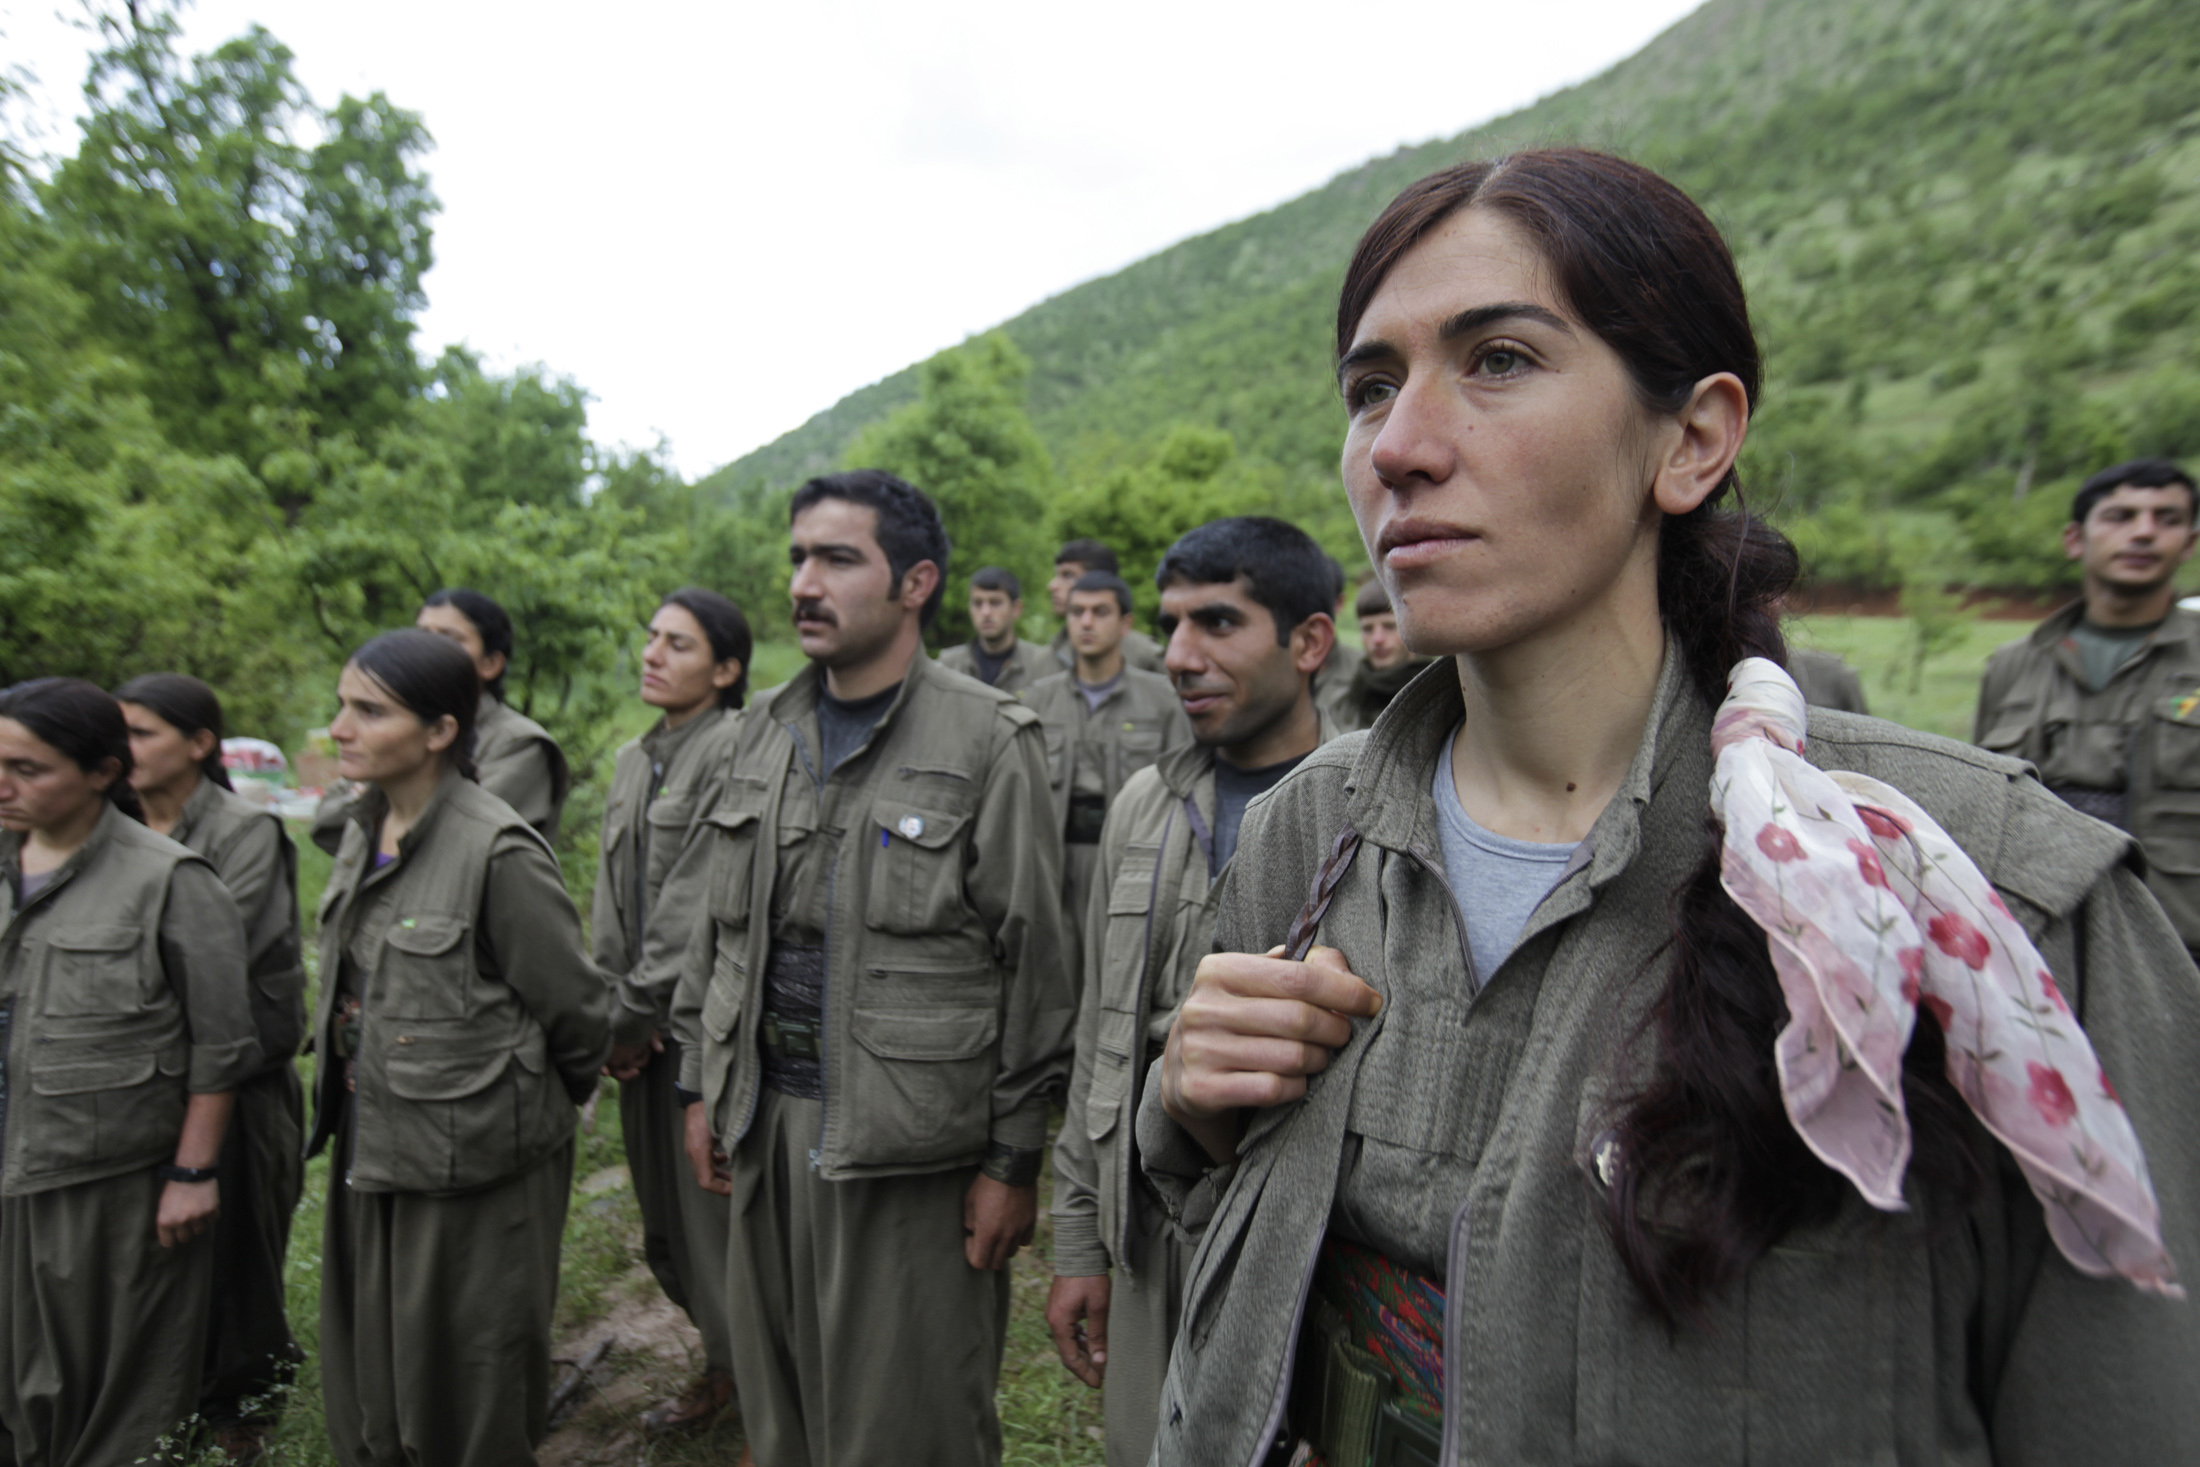 Fighters from the Kurdistan Workers Party, or PKK, stand in formation in northern Iraq on May 14, 2013.